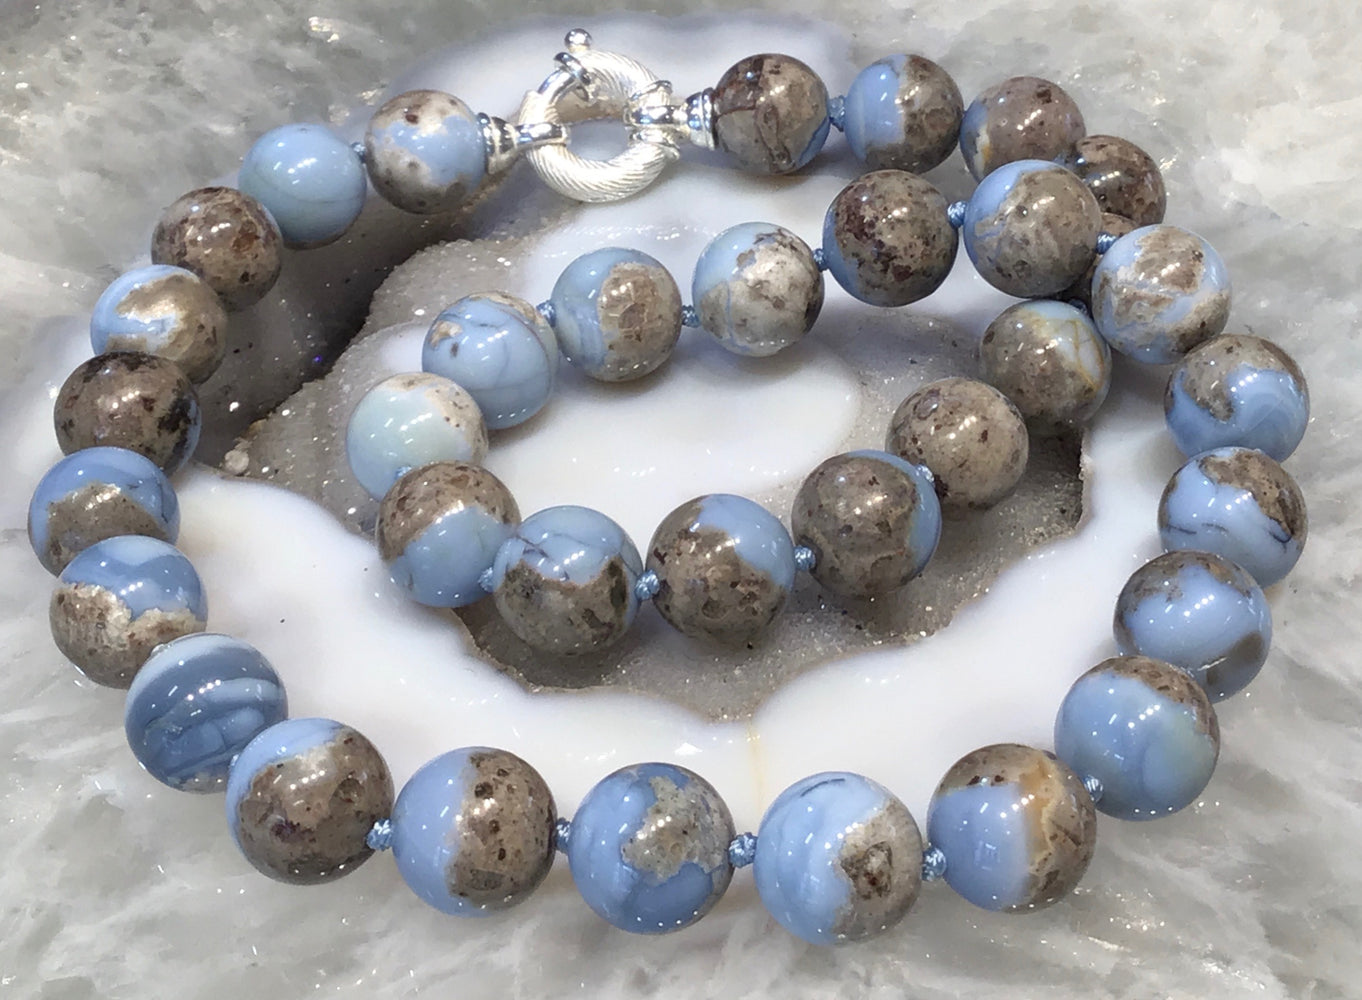 Owyhee blue opal round gemstone bead necklace - Rare